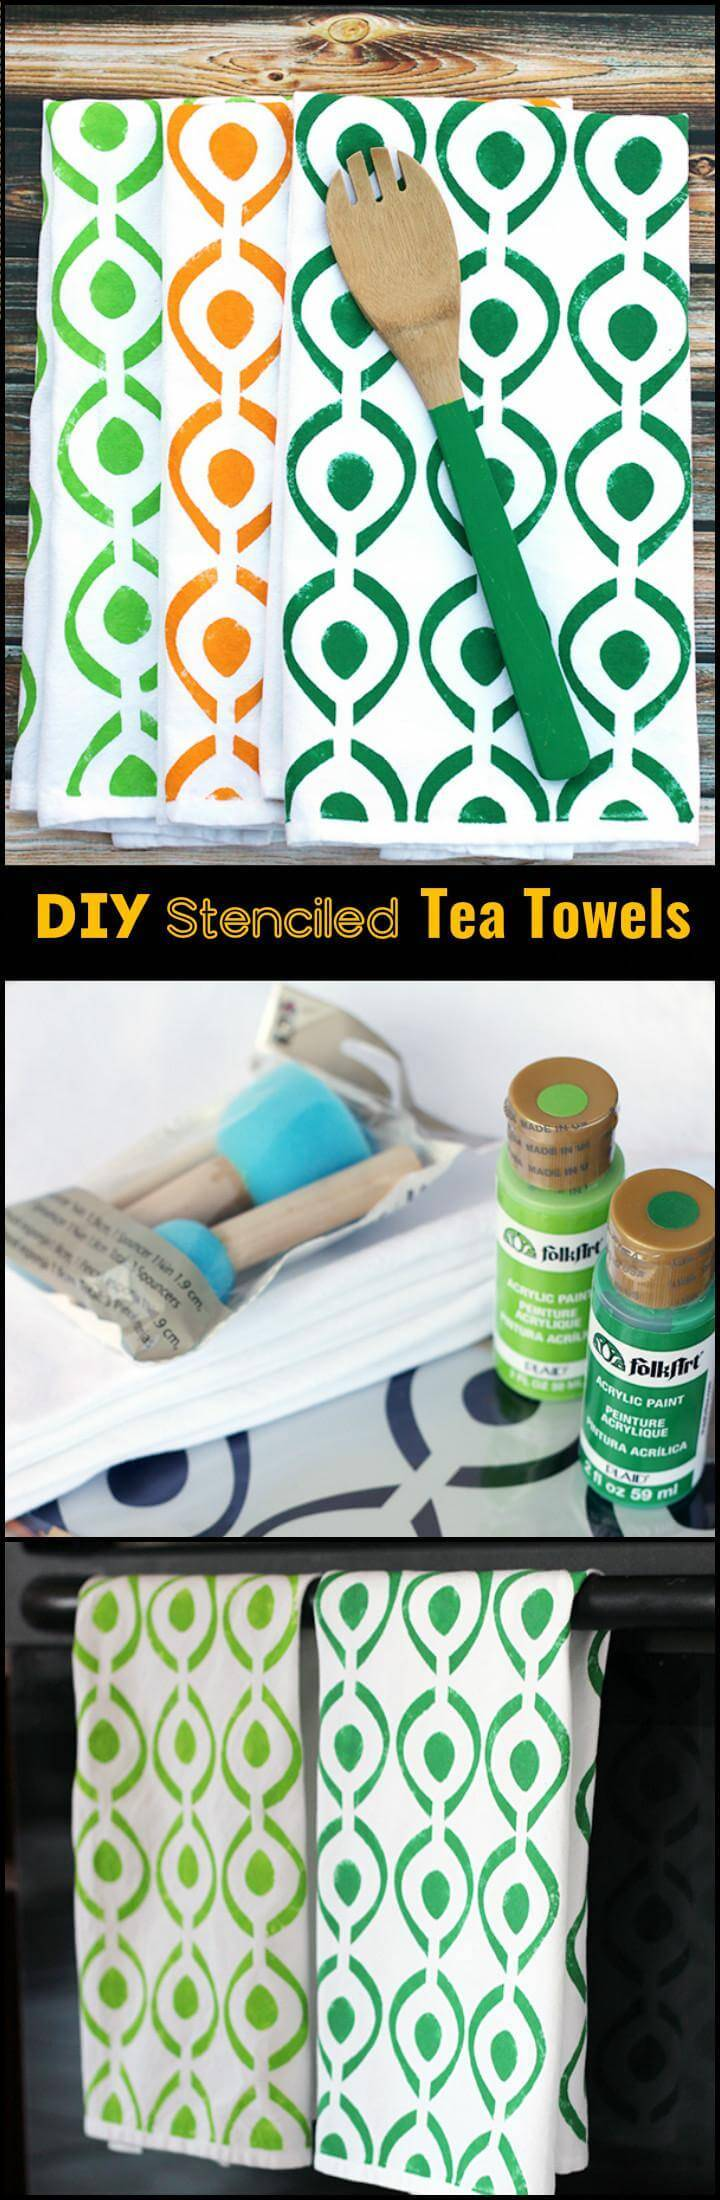 easy DIY stenciled tea towels